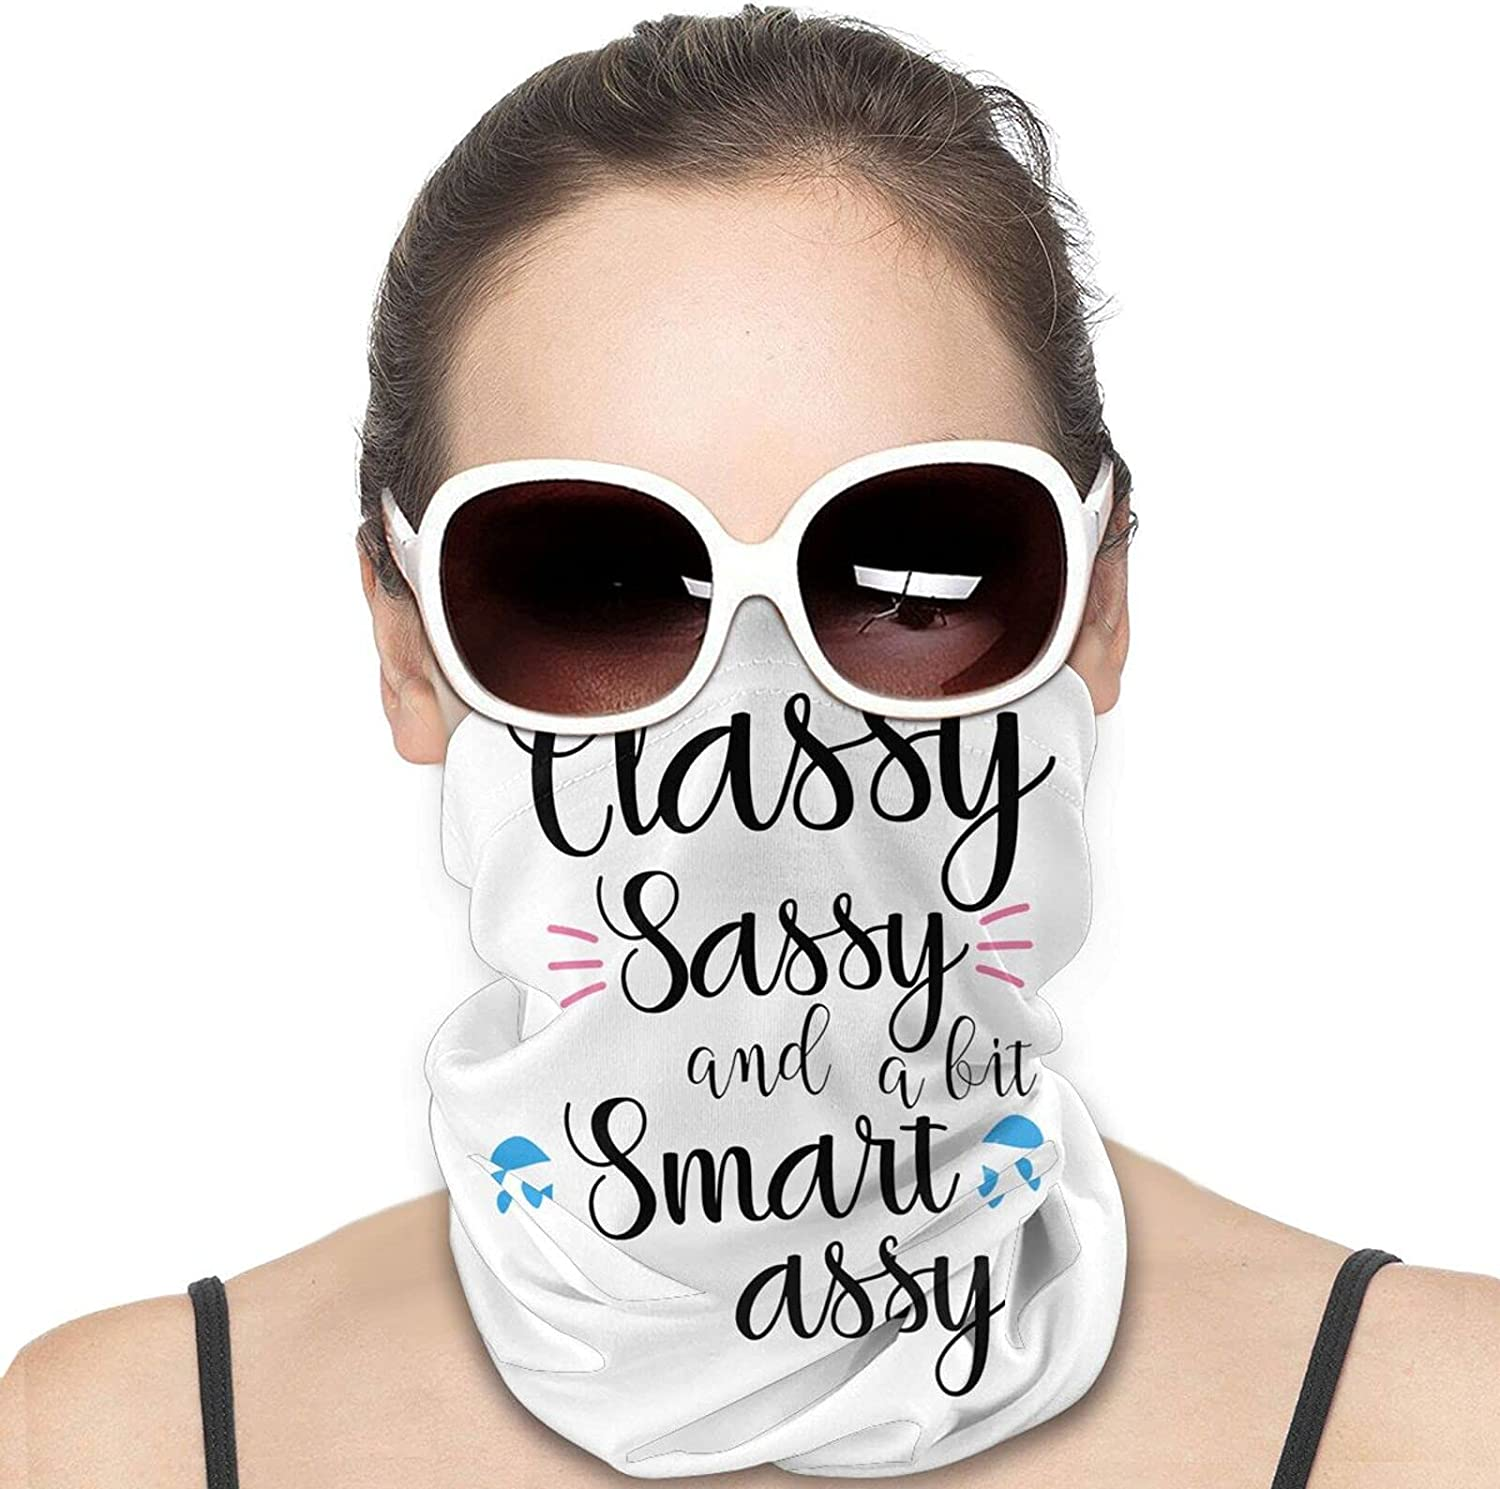 Classy, Sassy and a bit Smart Assy Round Neck Gaiter Bandnas Face Cover Uv Protection Prevent bask in Ice Scarf Headbands Perfect for Motorcycle Cycling Running Festival Raves Outdoors